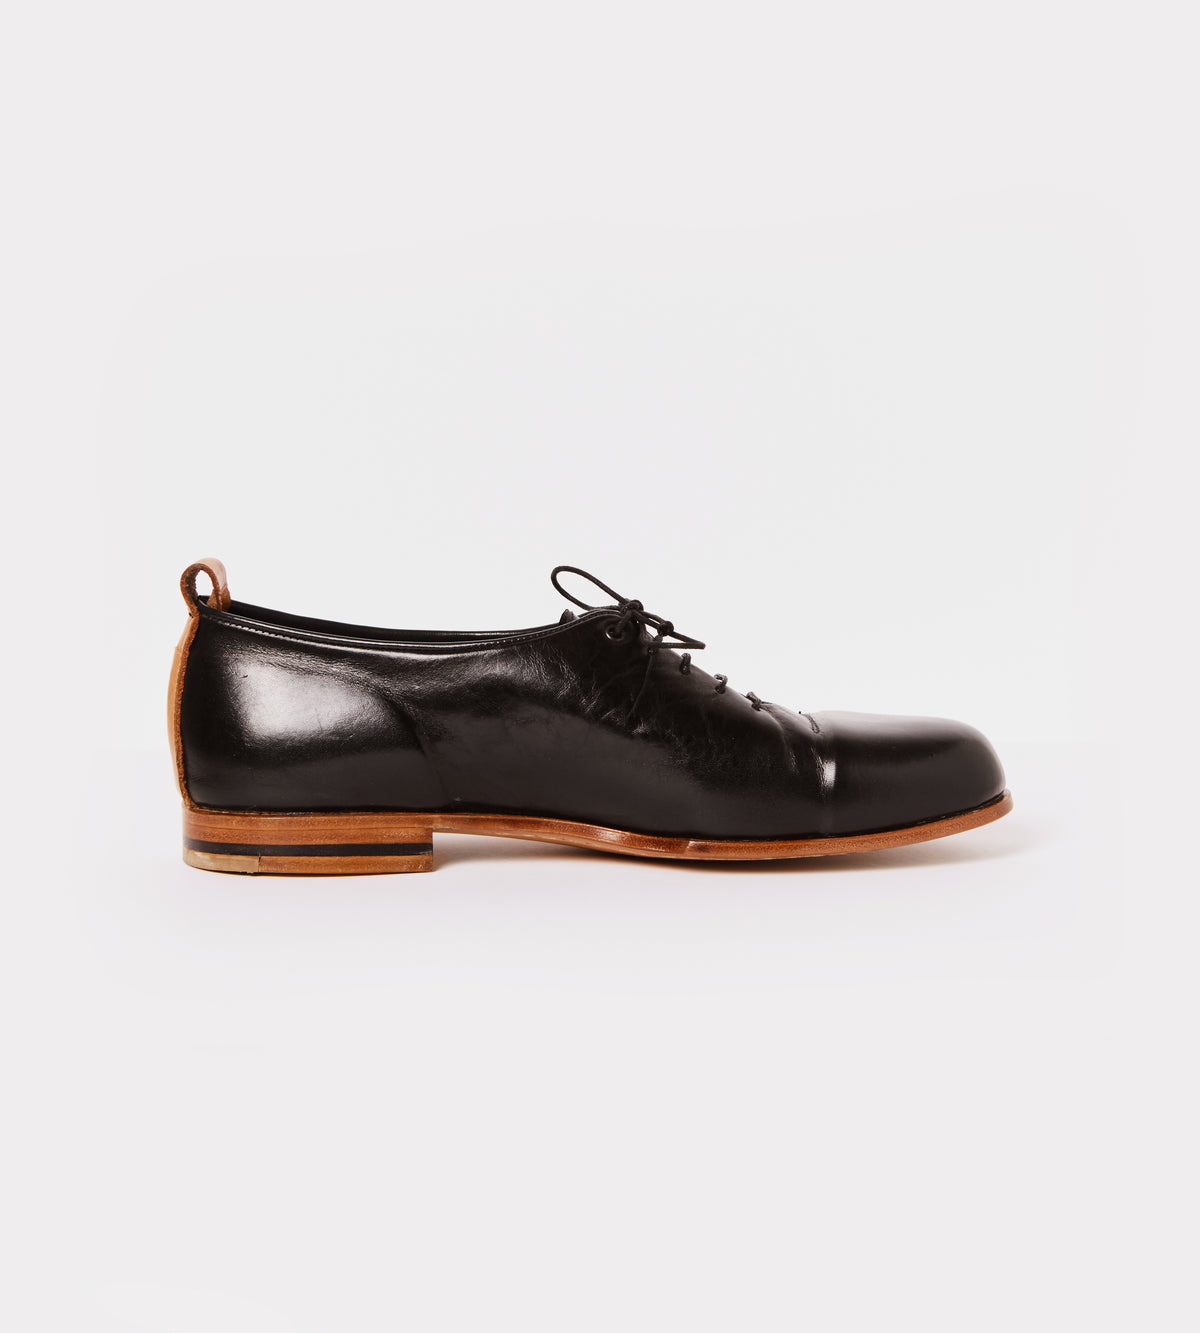 Black calf leather wholecut shoe inside view